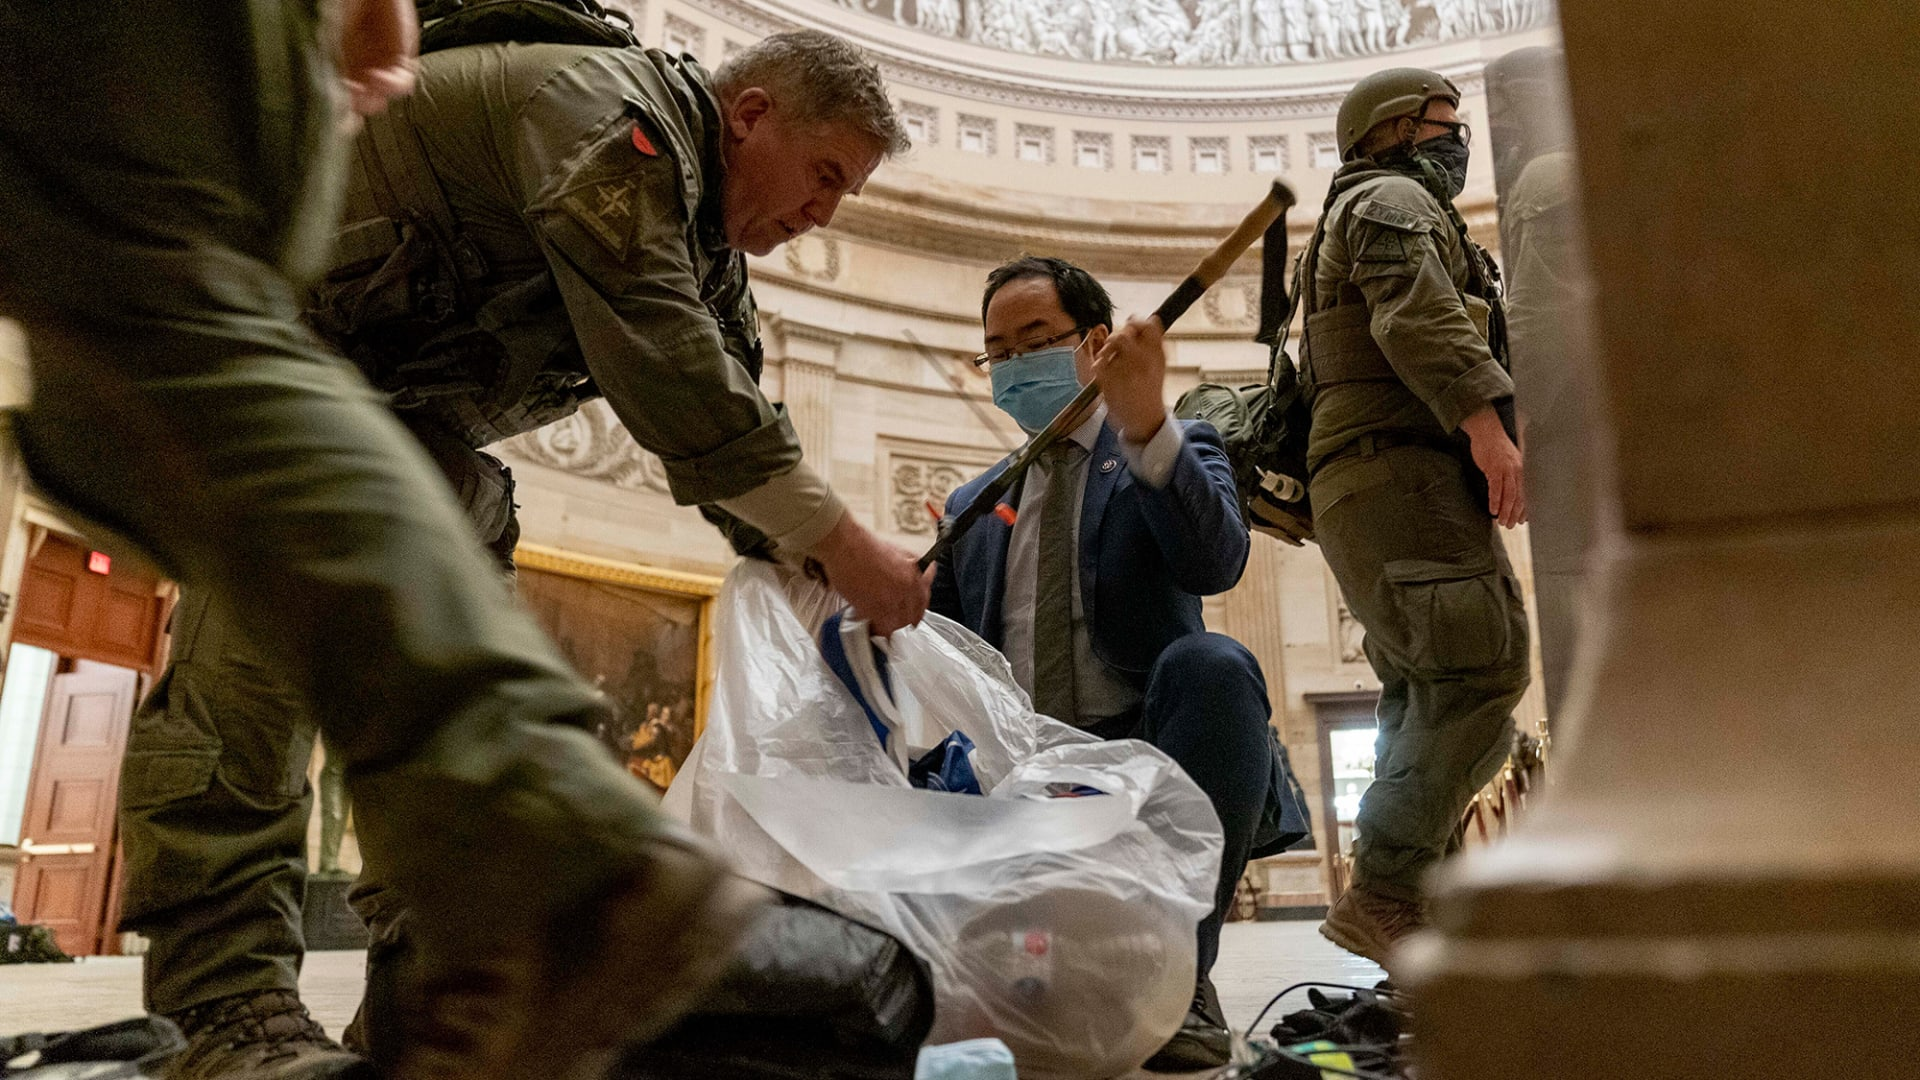 Representative Andy Kim helps ATF police officers clean up debris and personal belongings strewn across the floor of the Capitol Rotunda in the early morning hours of Thursday, January 7, 2021, after a rioting mob stormed the Capitol on Wednesday.